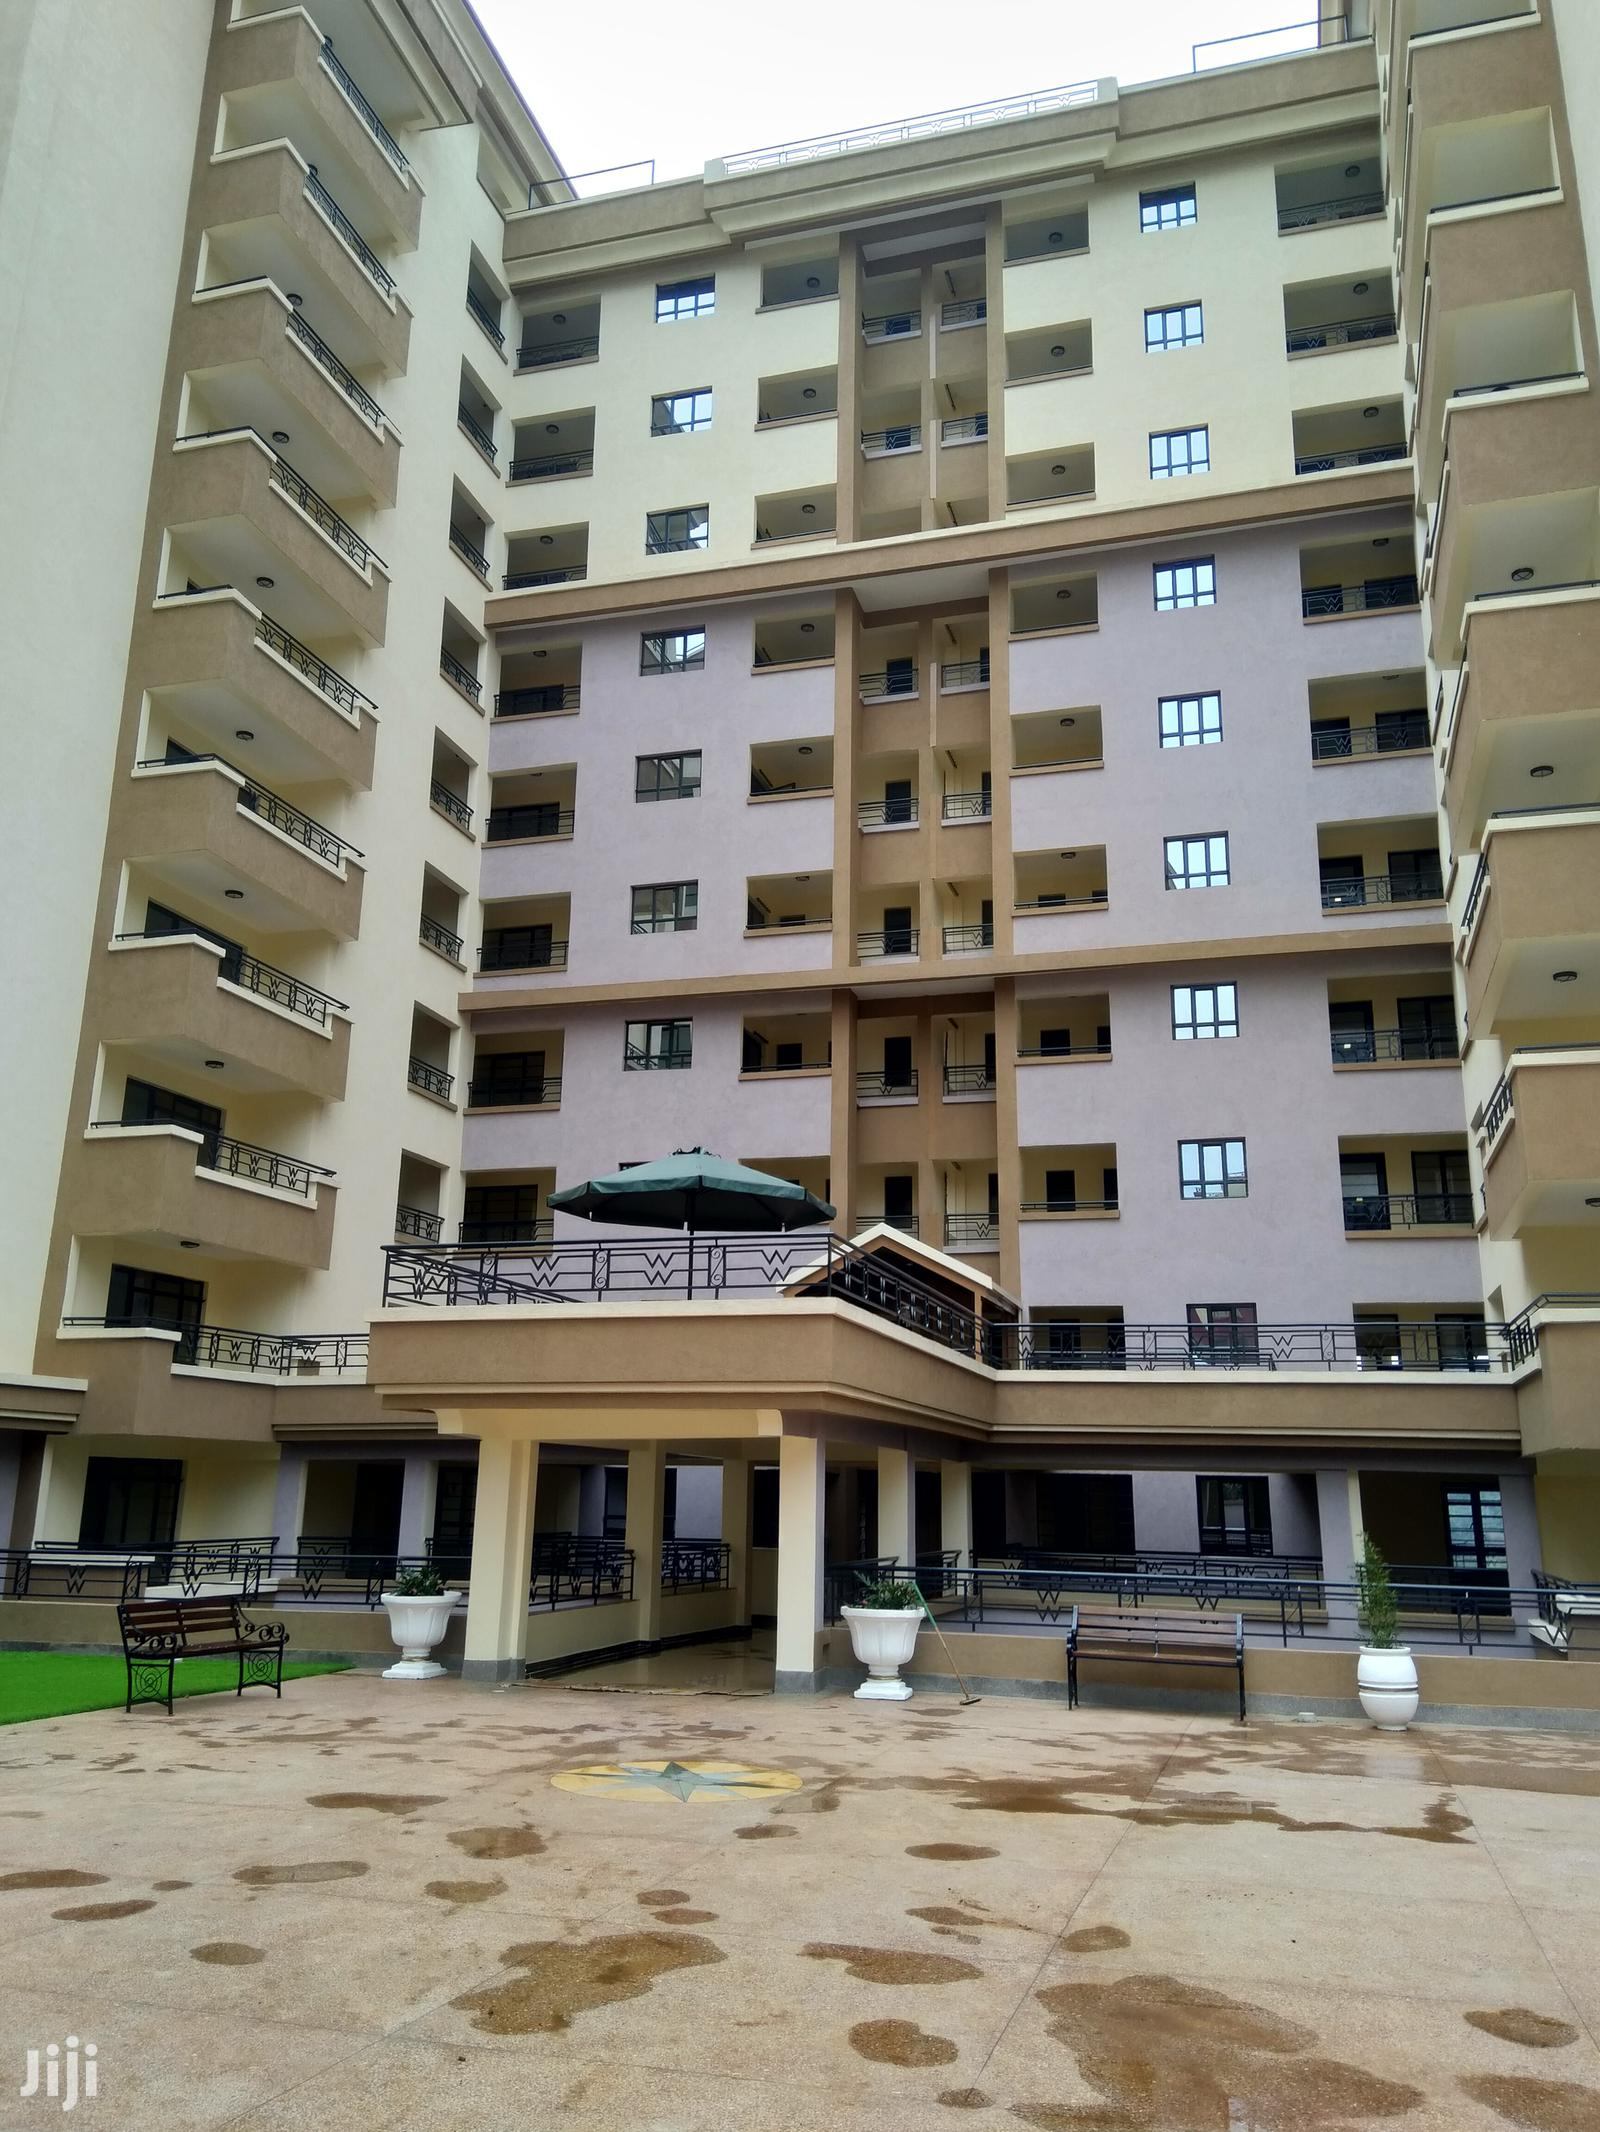 2 Bedroom Master Ensuite to Let in Thindigua | Houses & Apartments For Rent for sale in Thindigua/Kasarini, Kiambu, Kenya